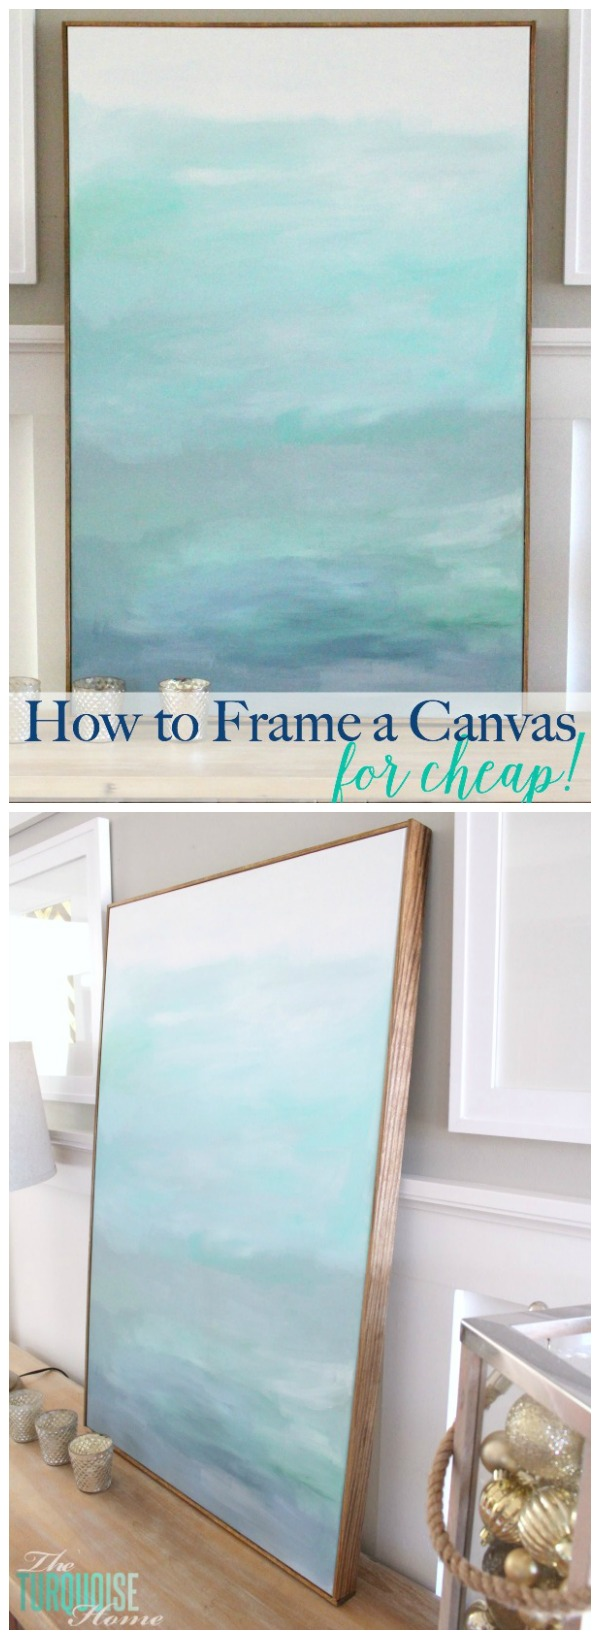 how-to-frame-a-canvas-for-cheap-collage.jpg